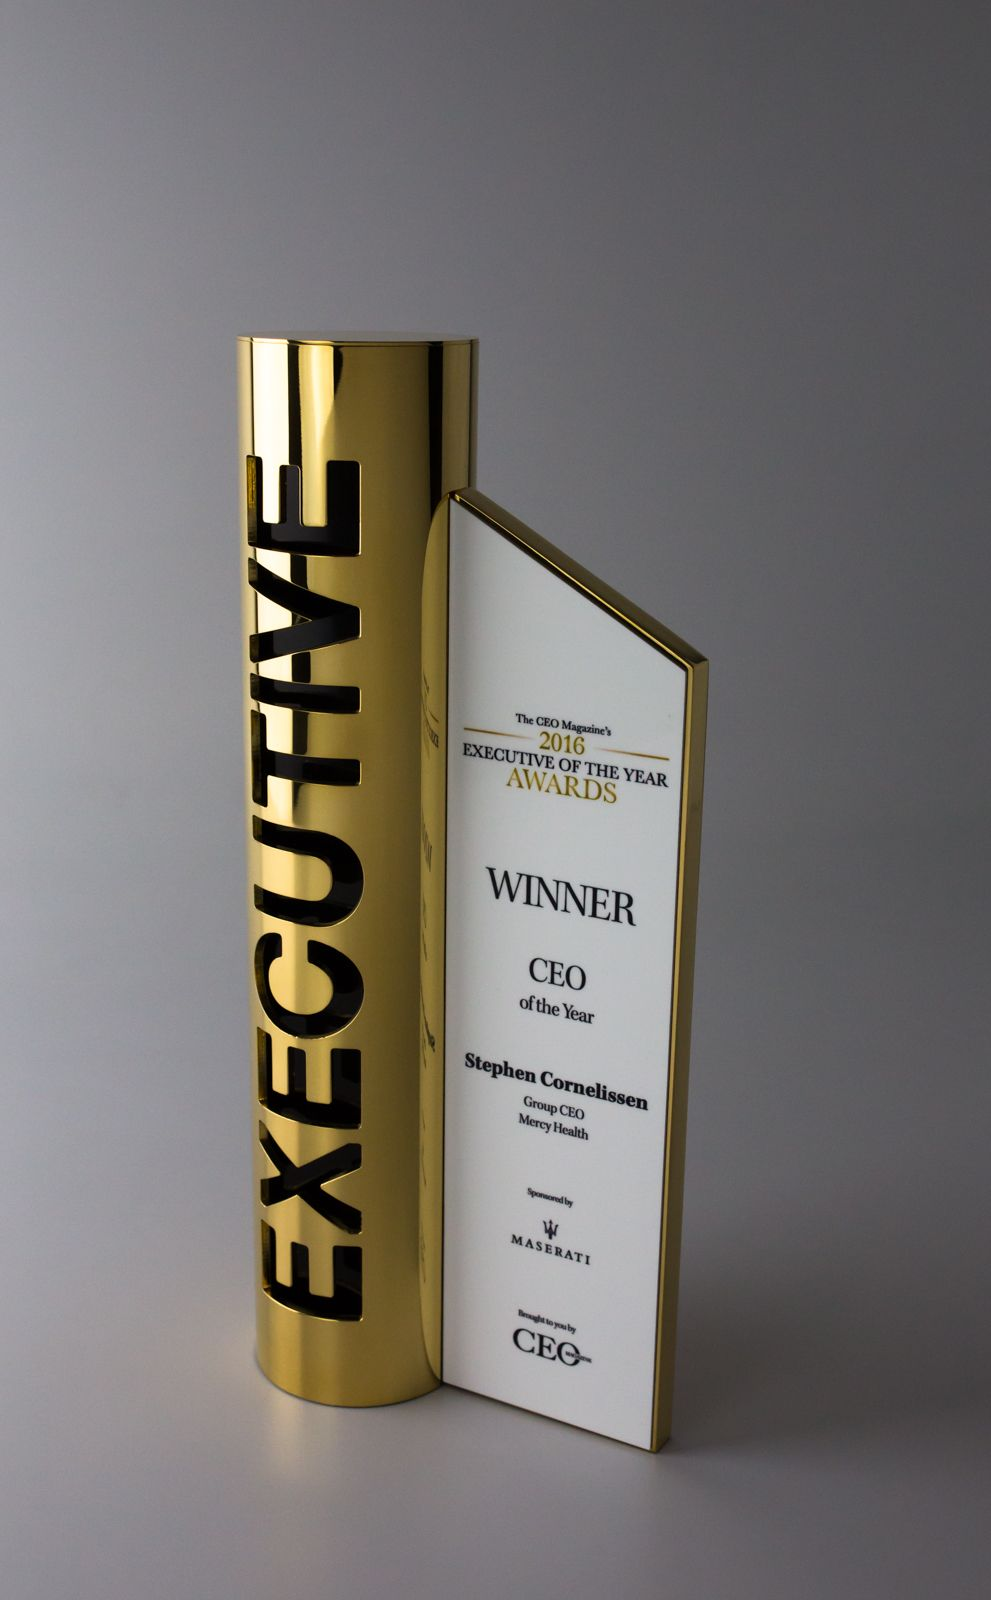 Unity tall modern trophy creative design beautiful materials not glass - Ceo Magazine Australia Award Trophy Design Awards